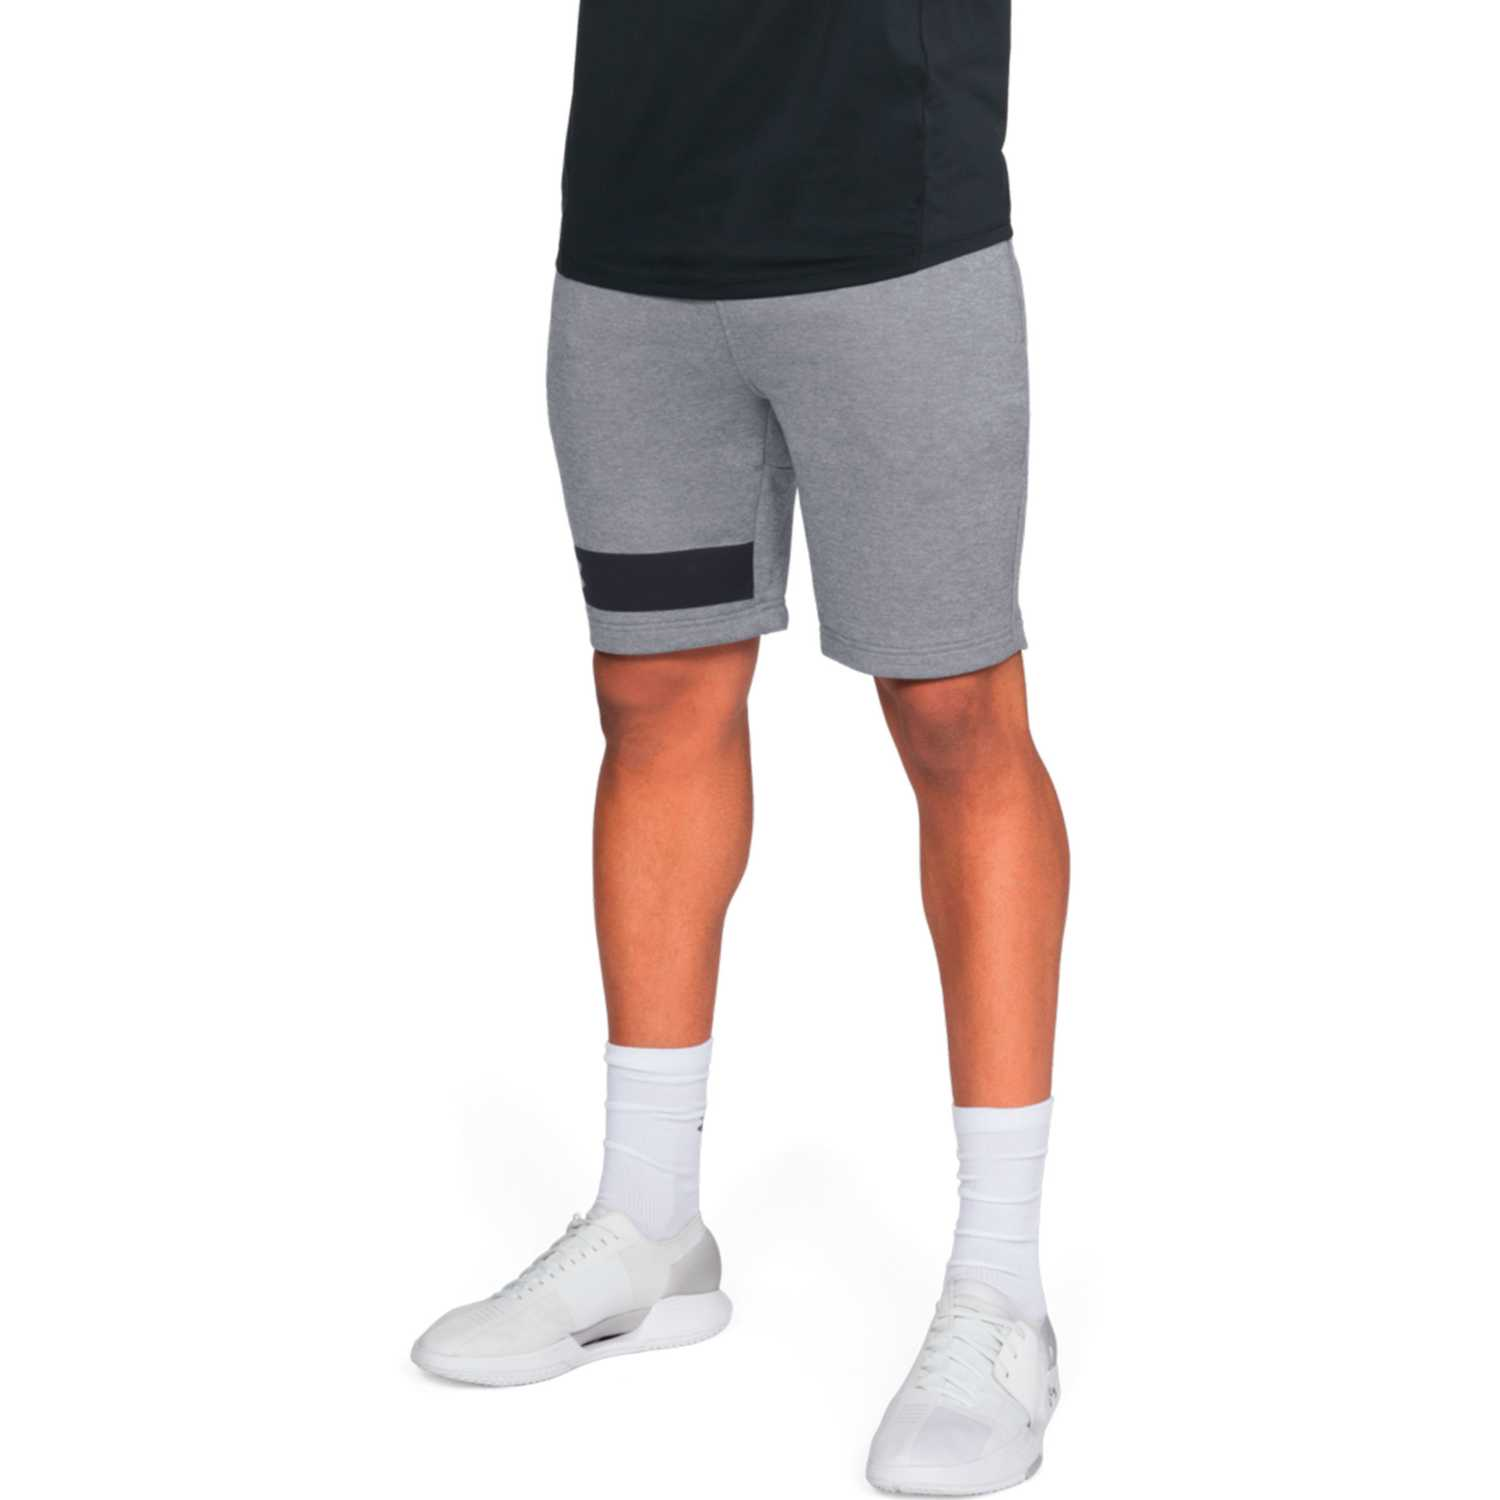 Under Armour mk1 terry short-gry Gris / negro Shorts Deportivos